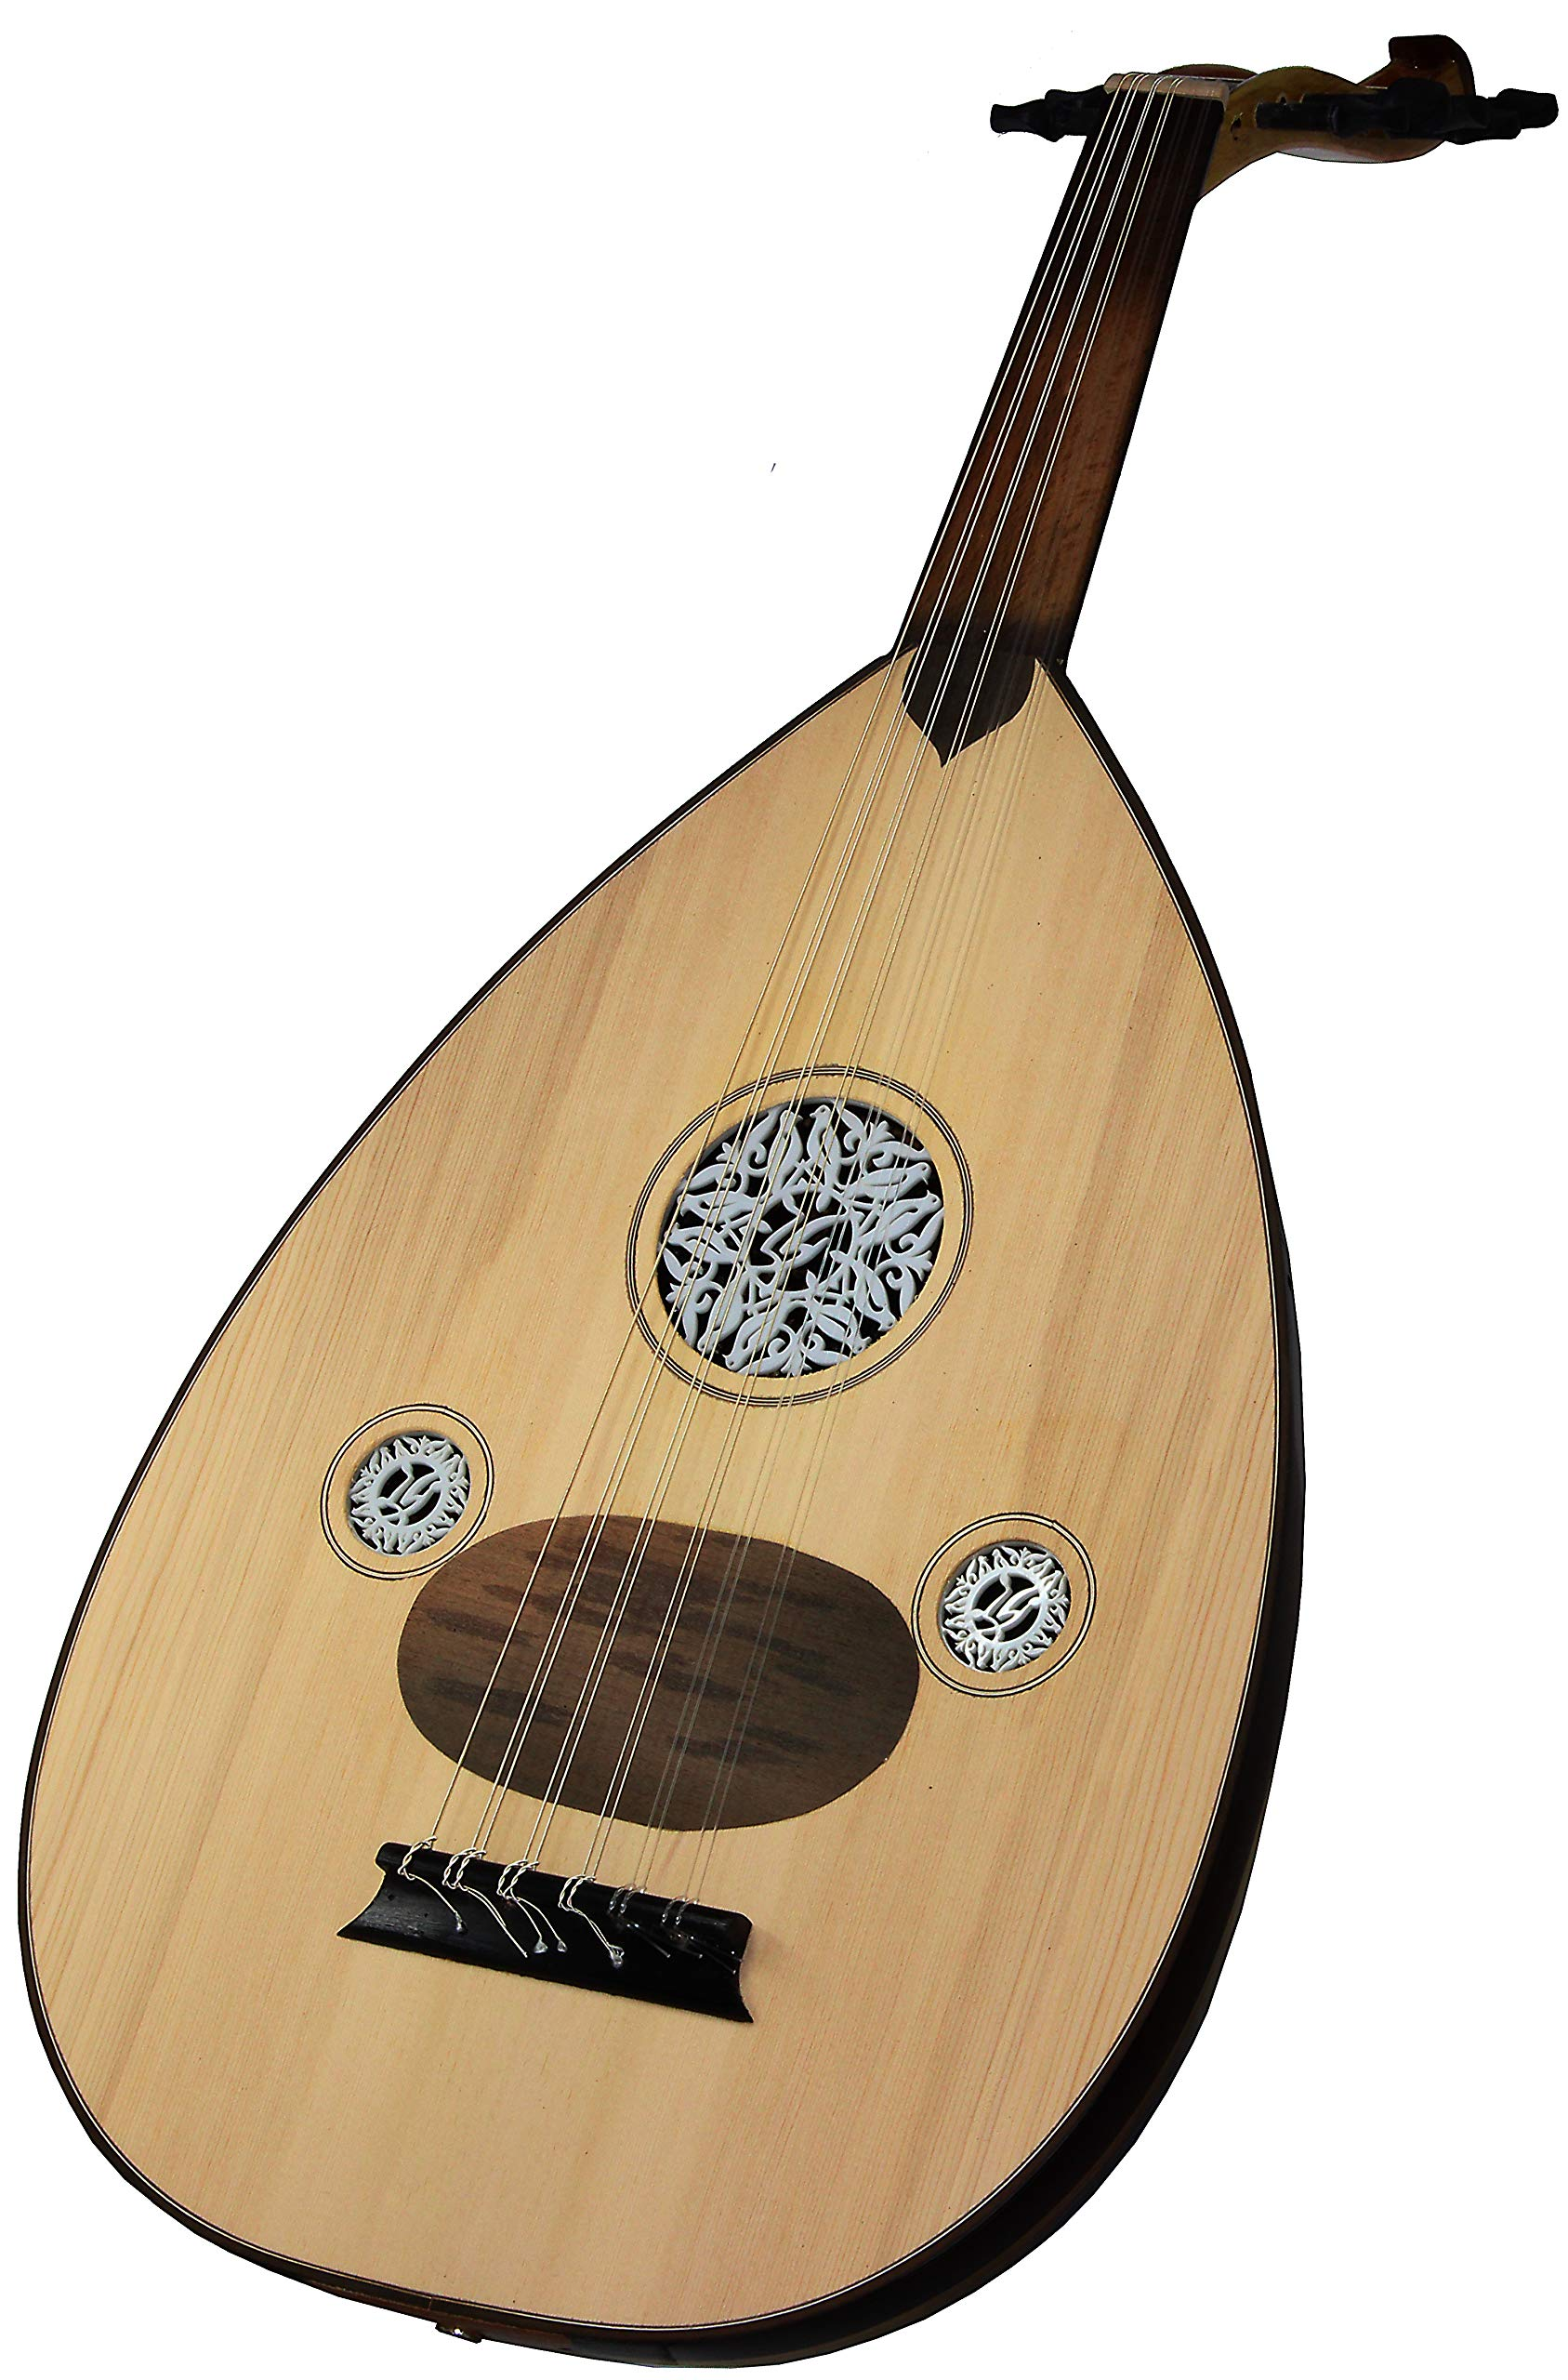 Skywin OUD Wood Musical Instrument - Hand Crafted Turkish Arabic OUD Instrument with Soft Case, 11 Turkish Strings, Picks, and 8' Instrument Cable